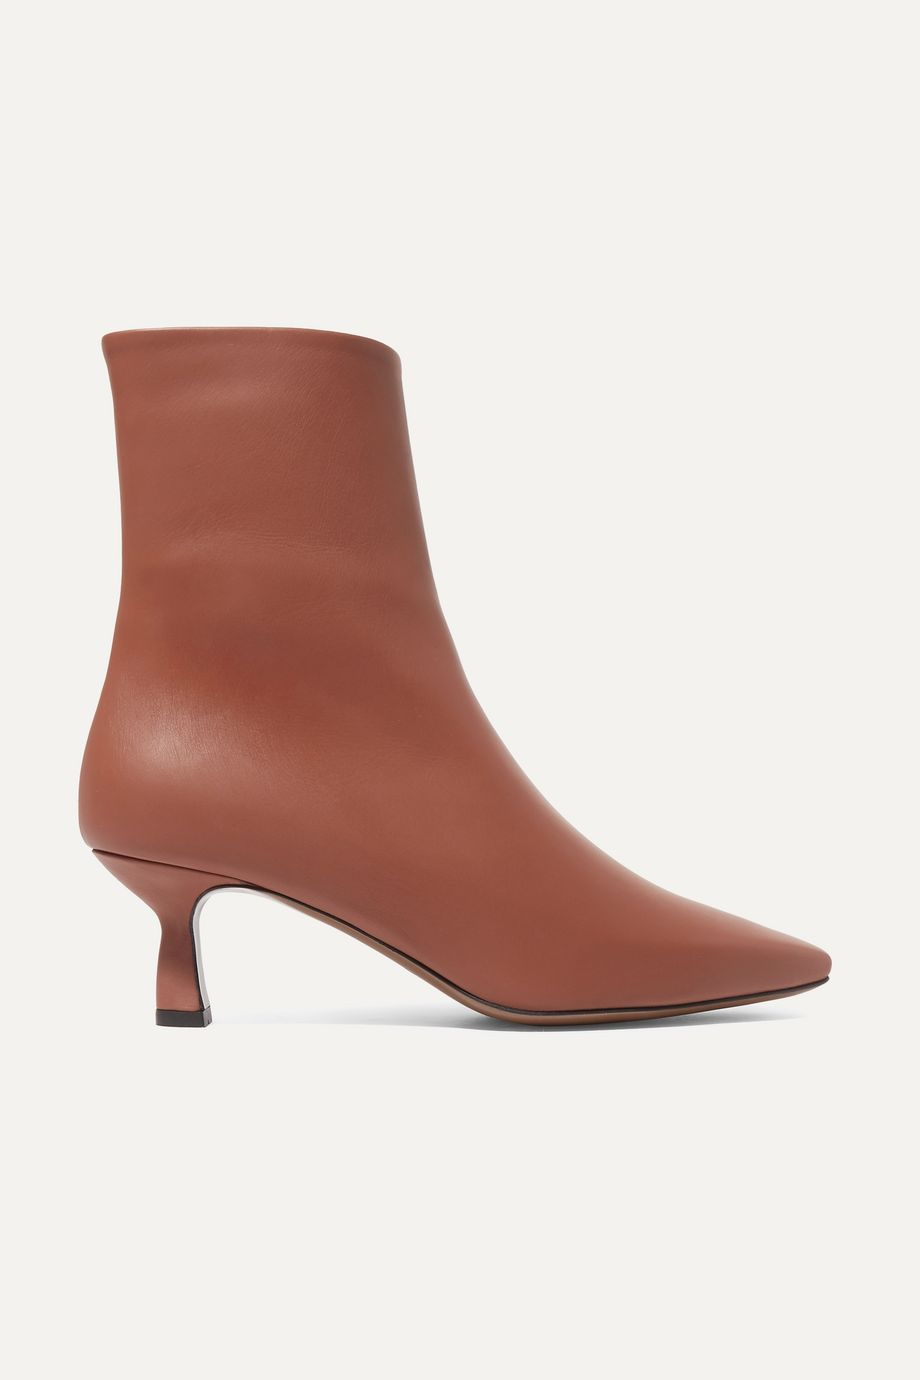 Neous Ancistro leather ankle boots